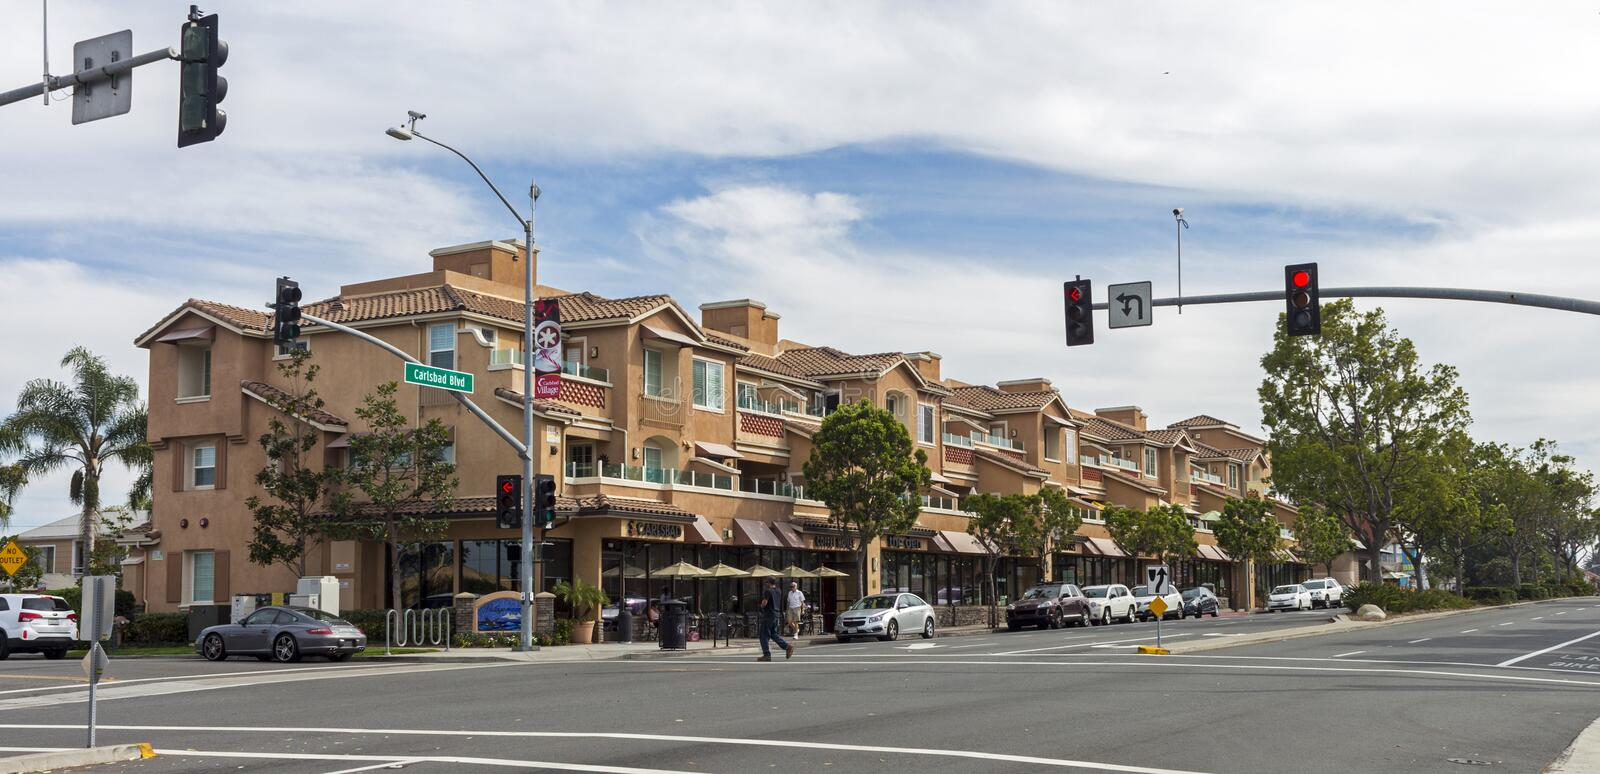 The main street in Carlsbad. CARLSBAD,UNITED STATES - NOVEMBER 15,2016:The main street in Carlsbad,California,United States royalty free stock images